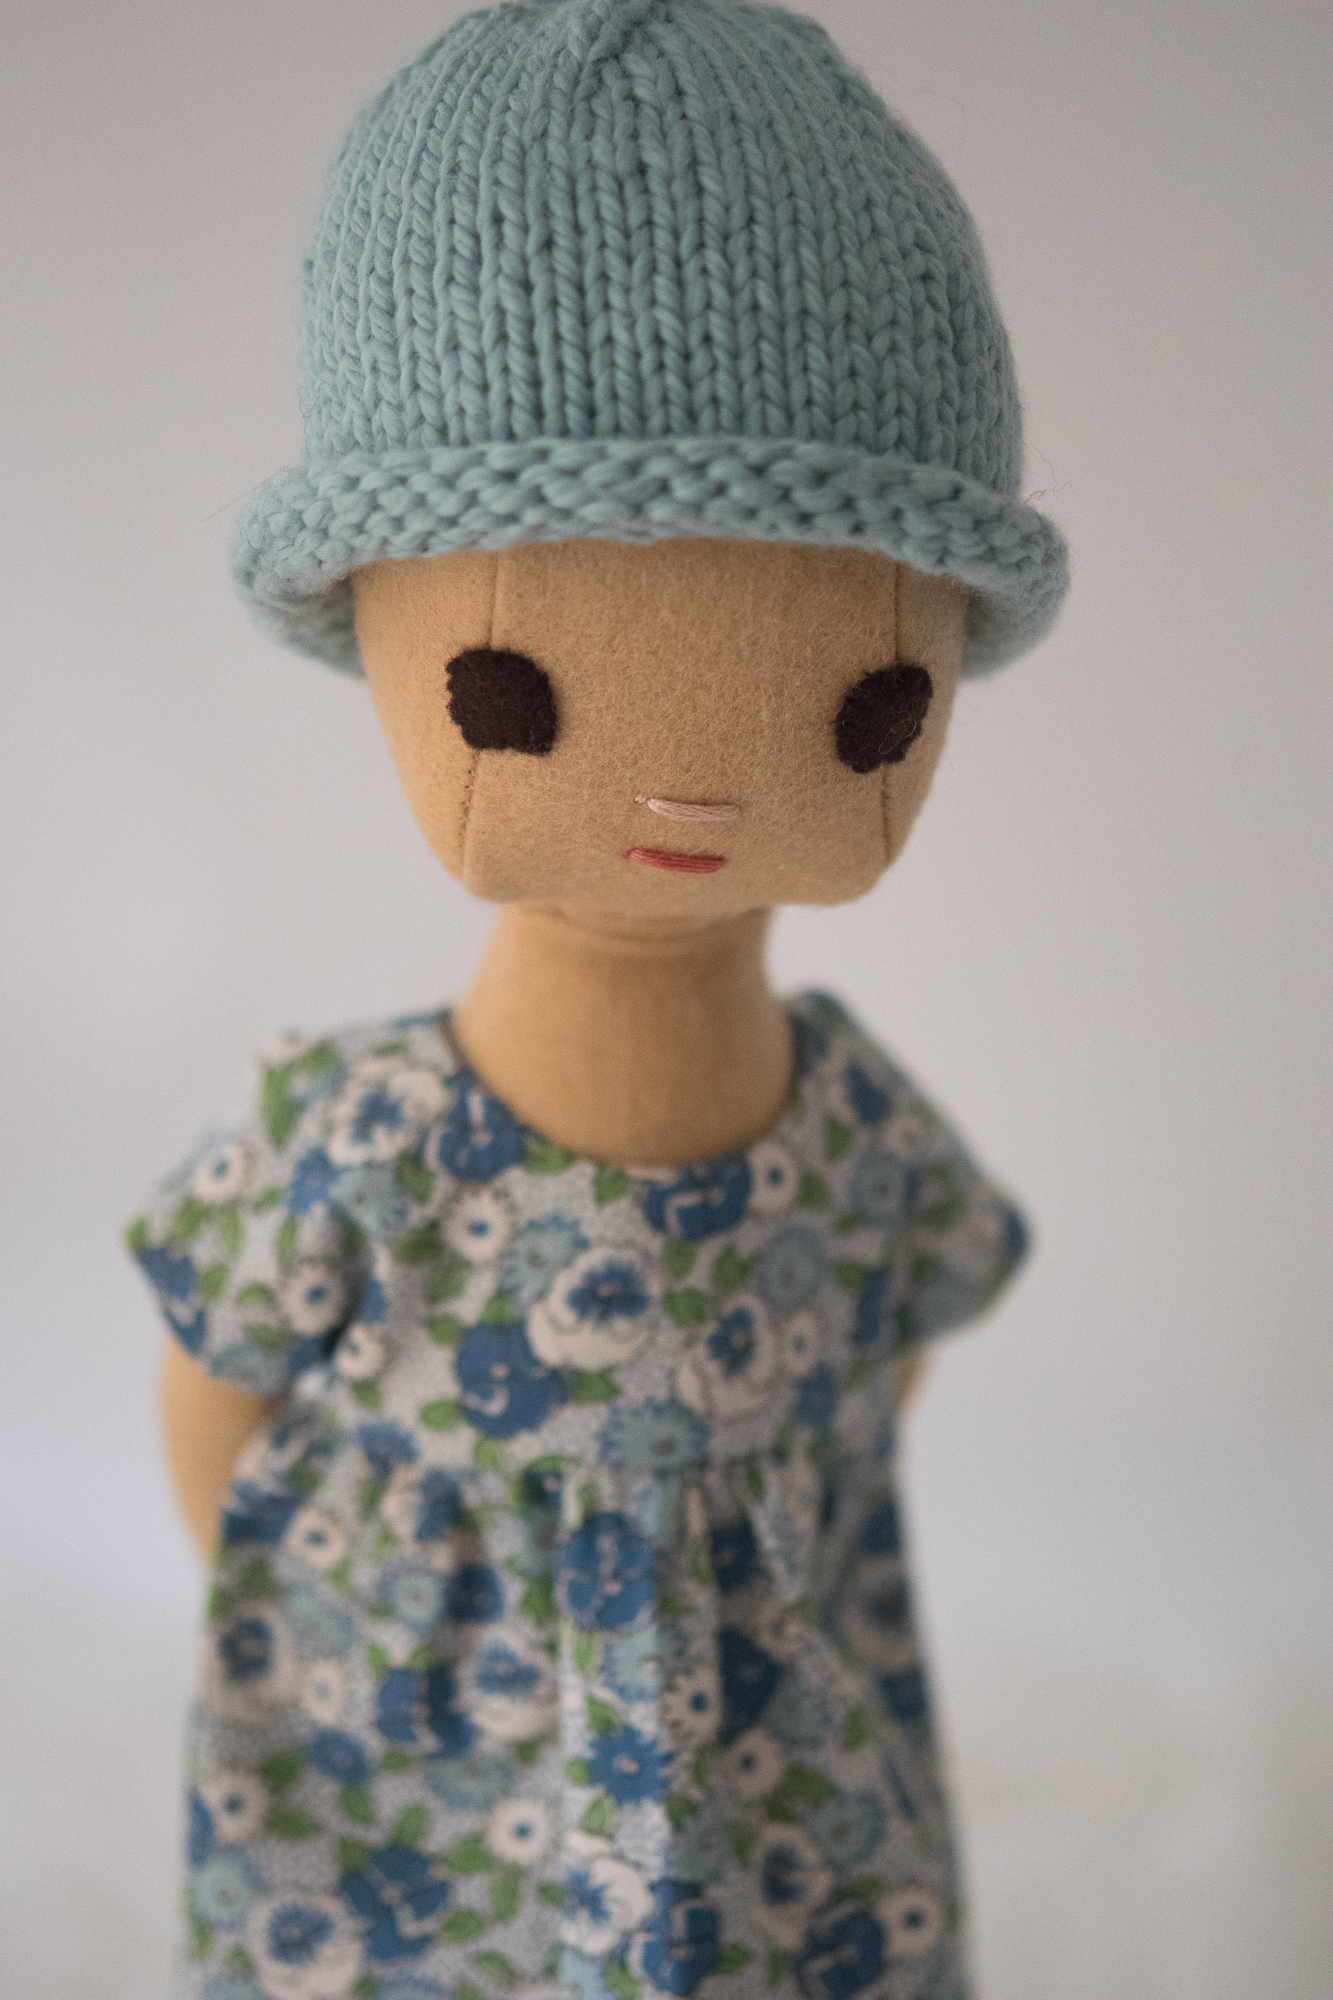 Phoebe doll for child with cancer